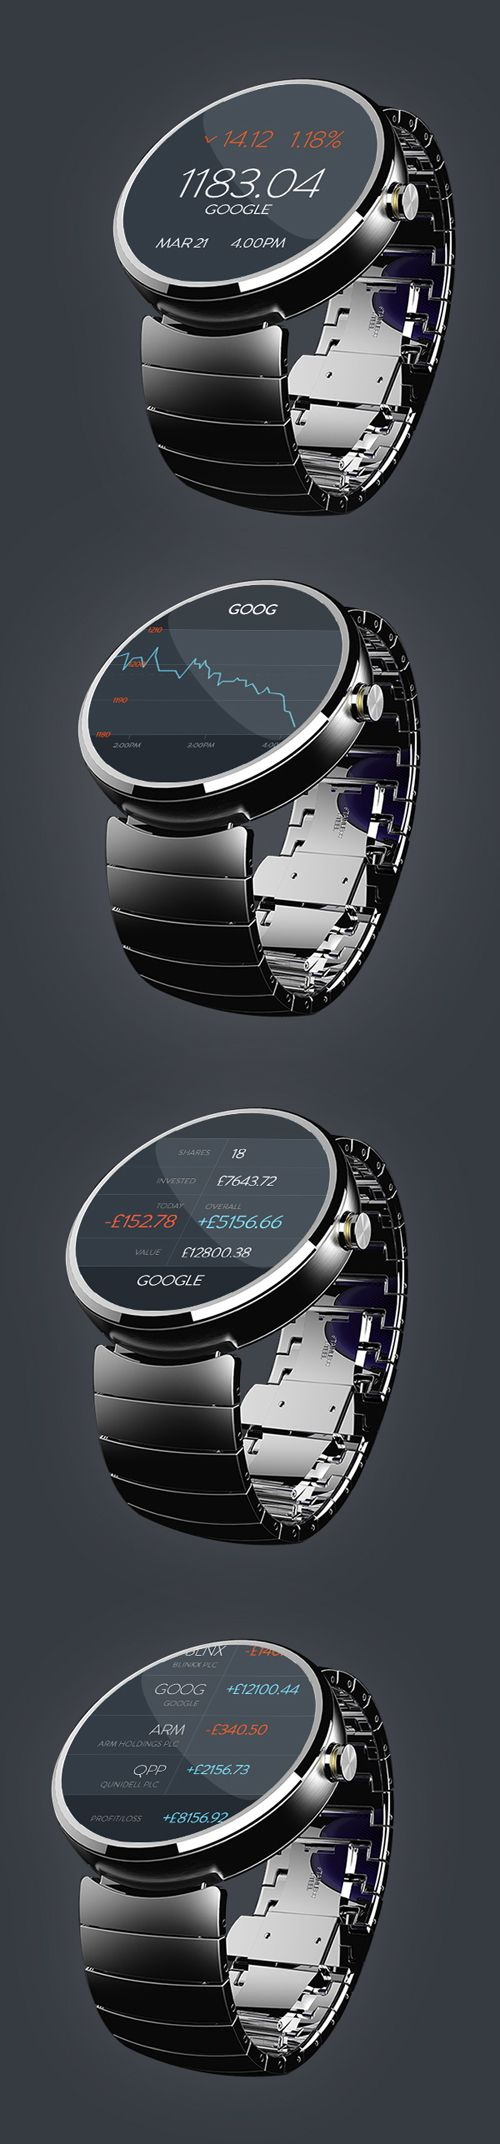 Moto 360 - the watch that will transform the wearable tech market…